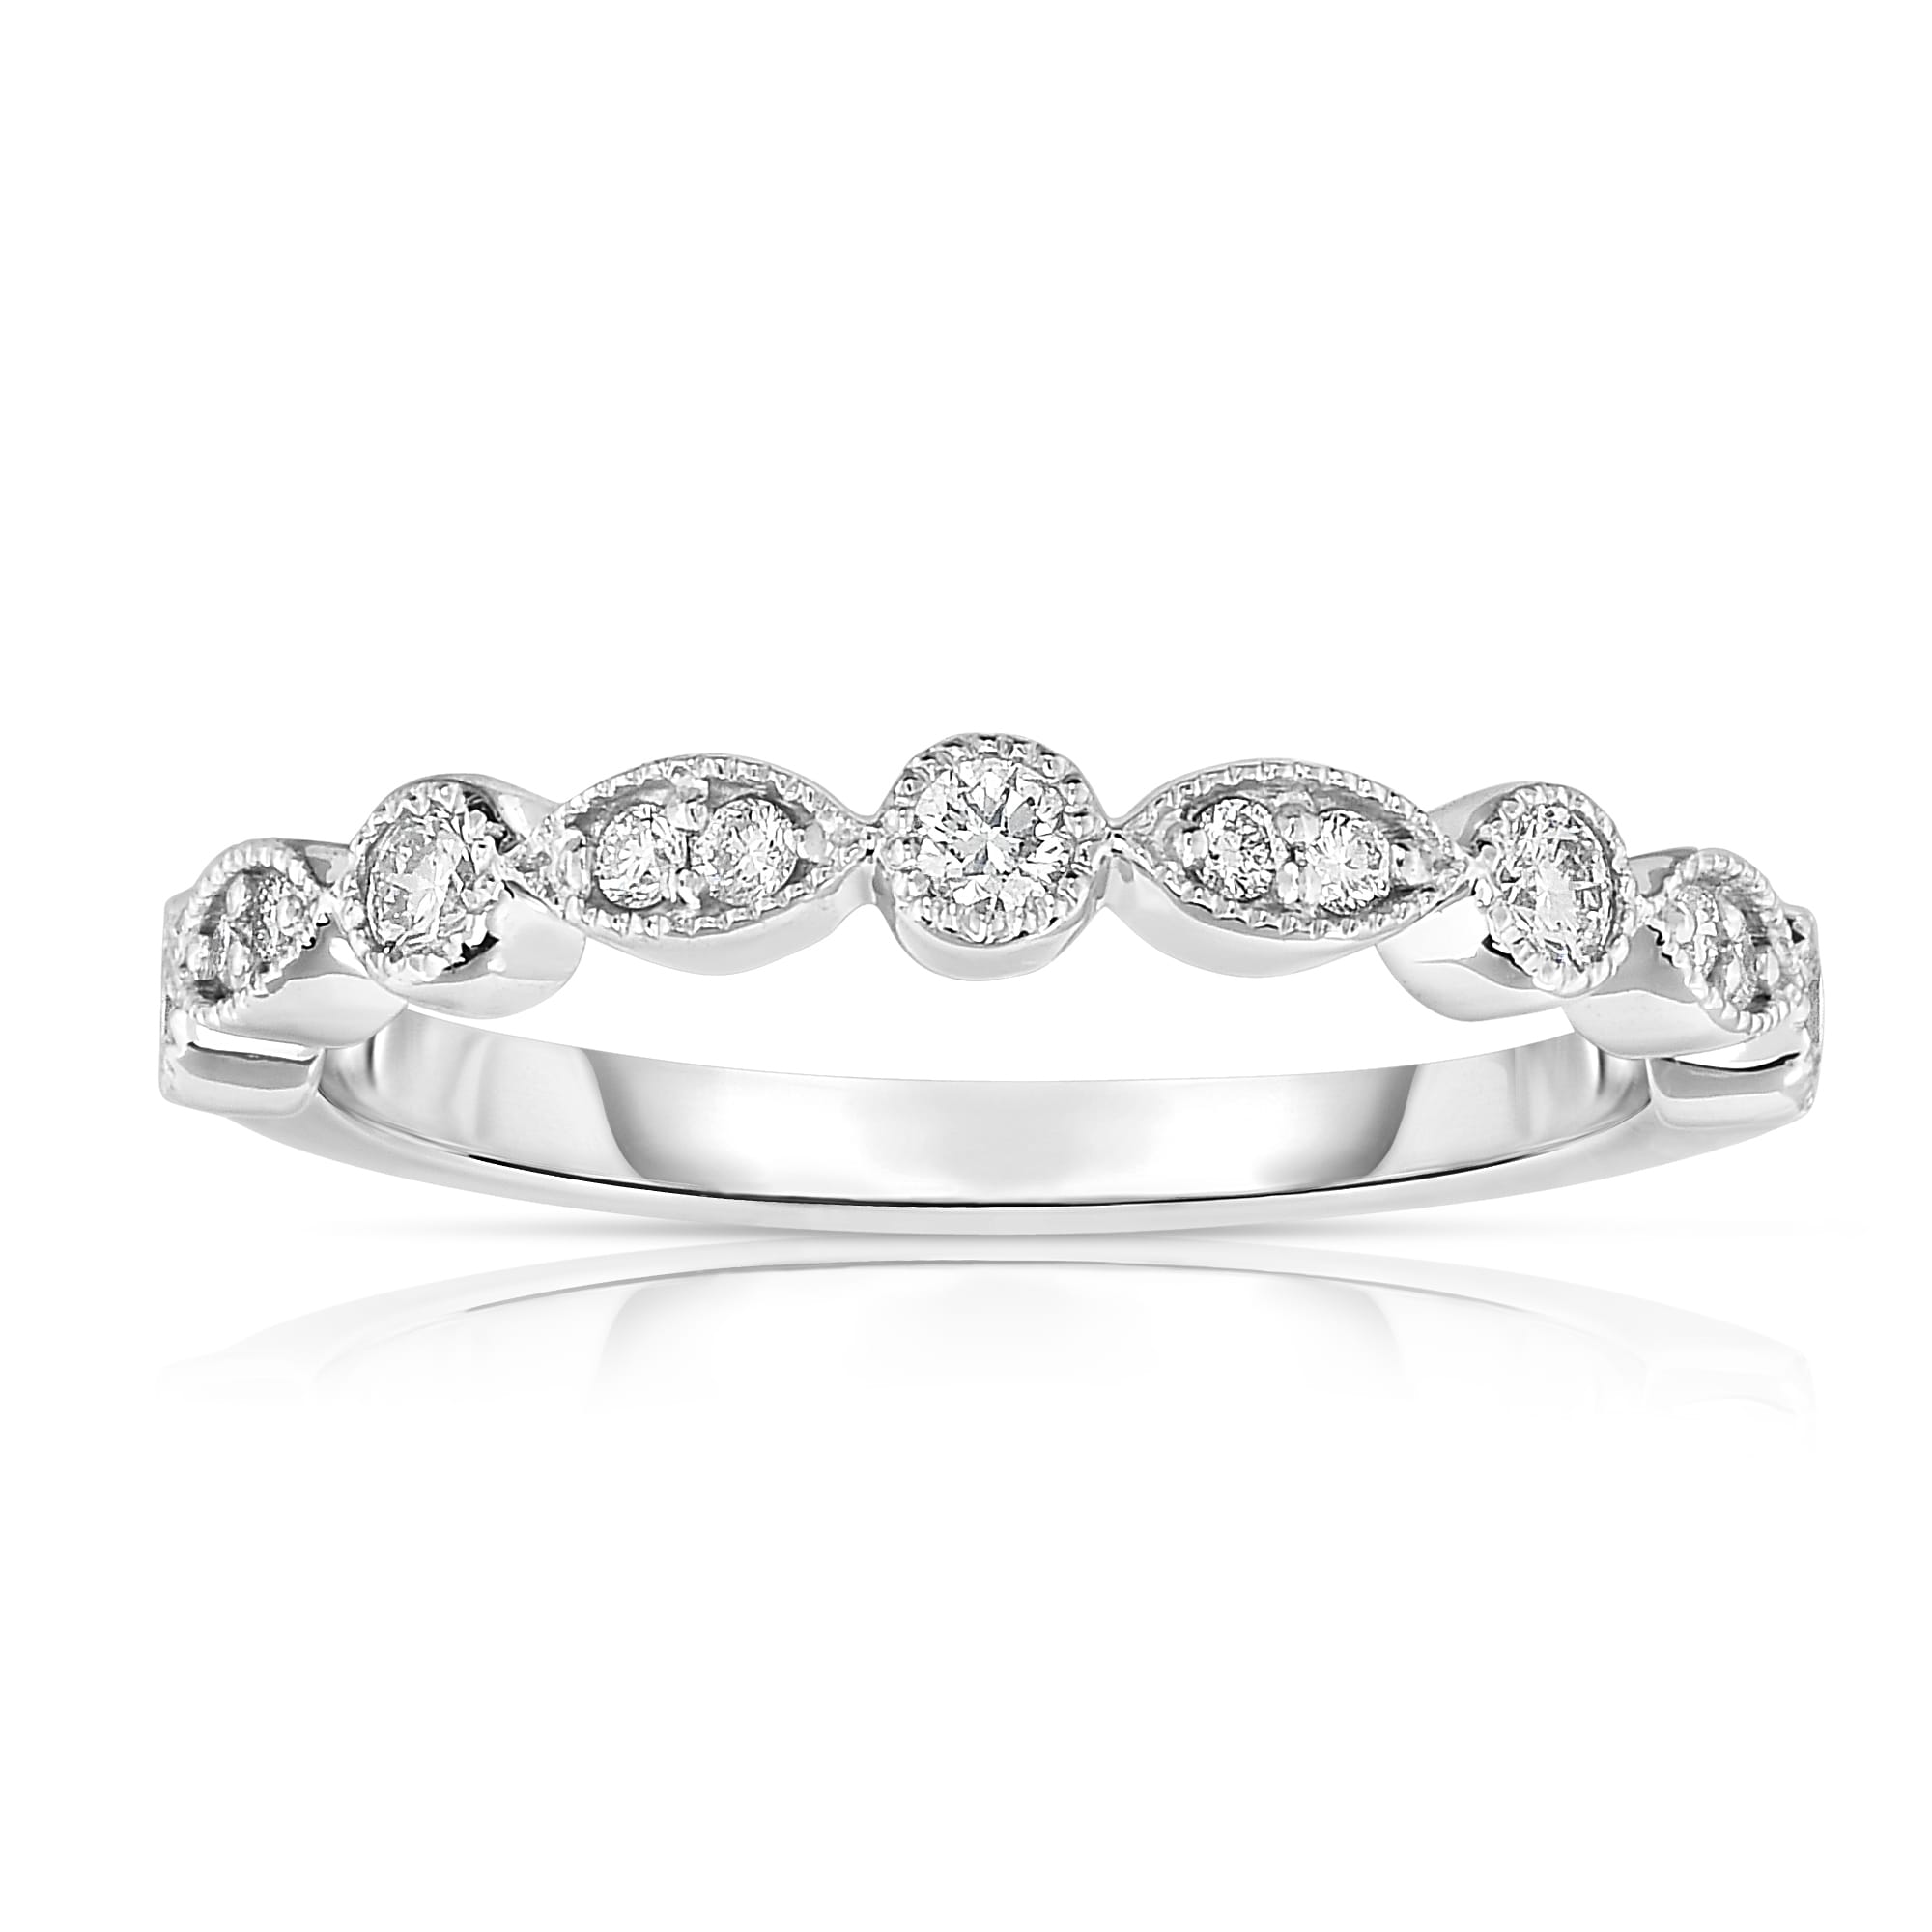 wedding the htm from dress platinum flowered ring company design designs engagement rings